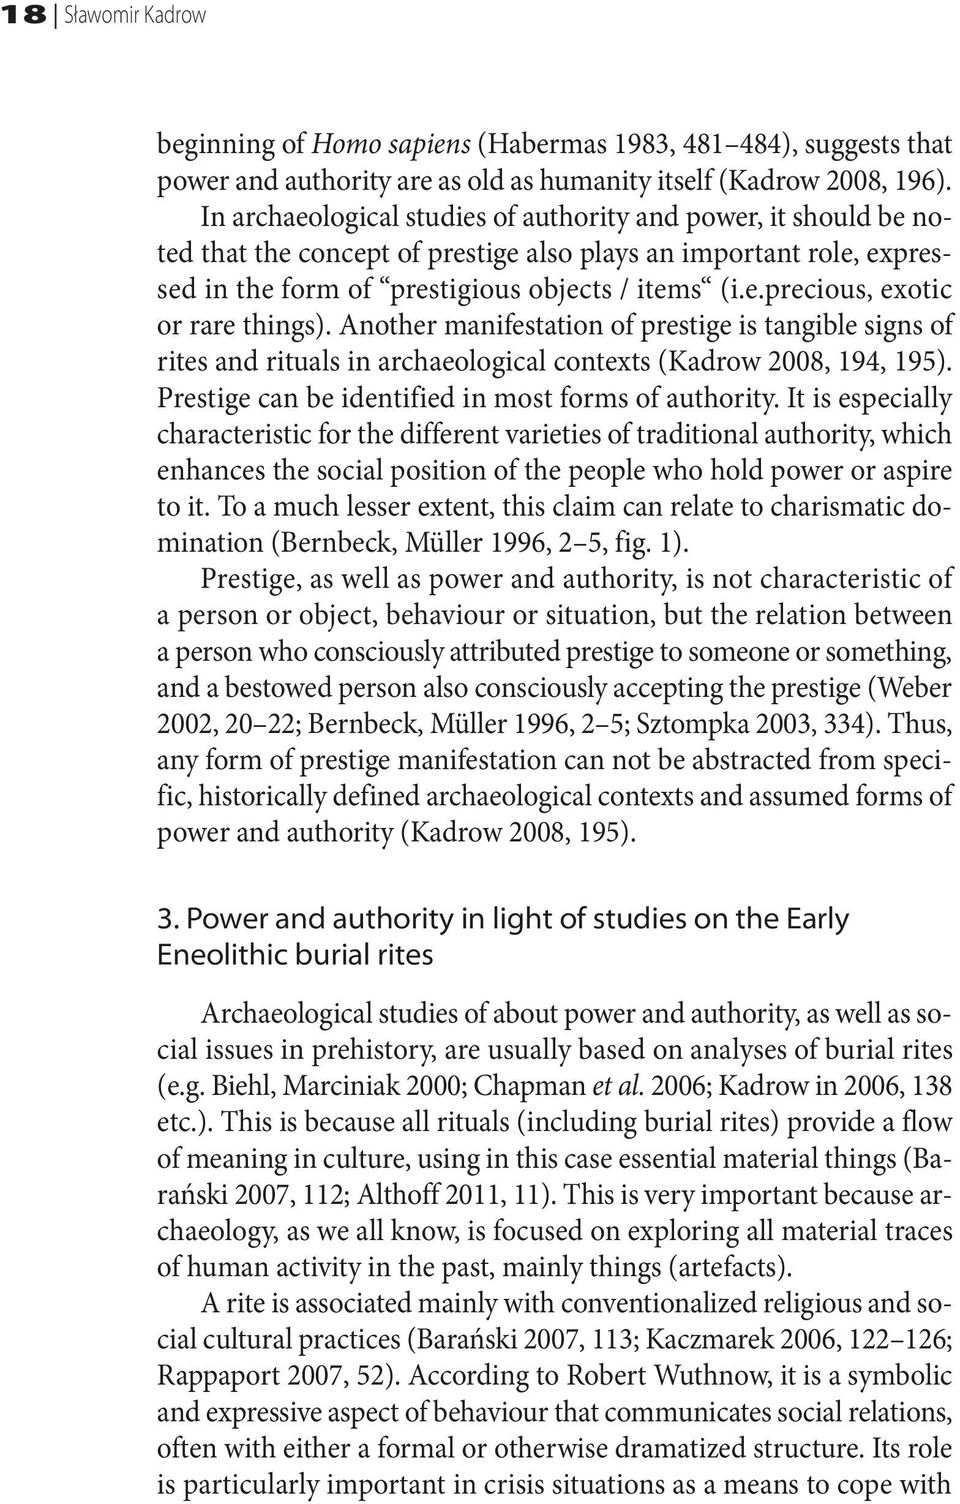 Another manifestation of prestige is tangible signs of rites and rituals in archaeological contexts (Kadrow 2008, 194, 195). Prestige can be identified in most forms of authority.